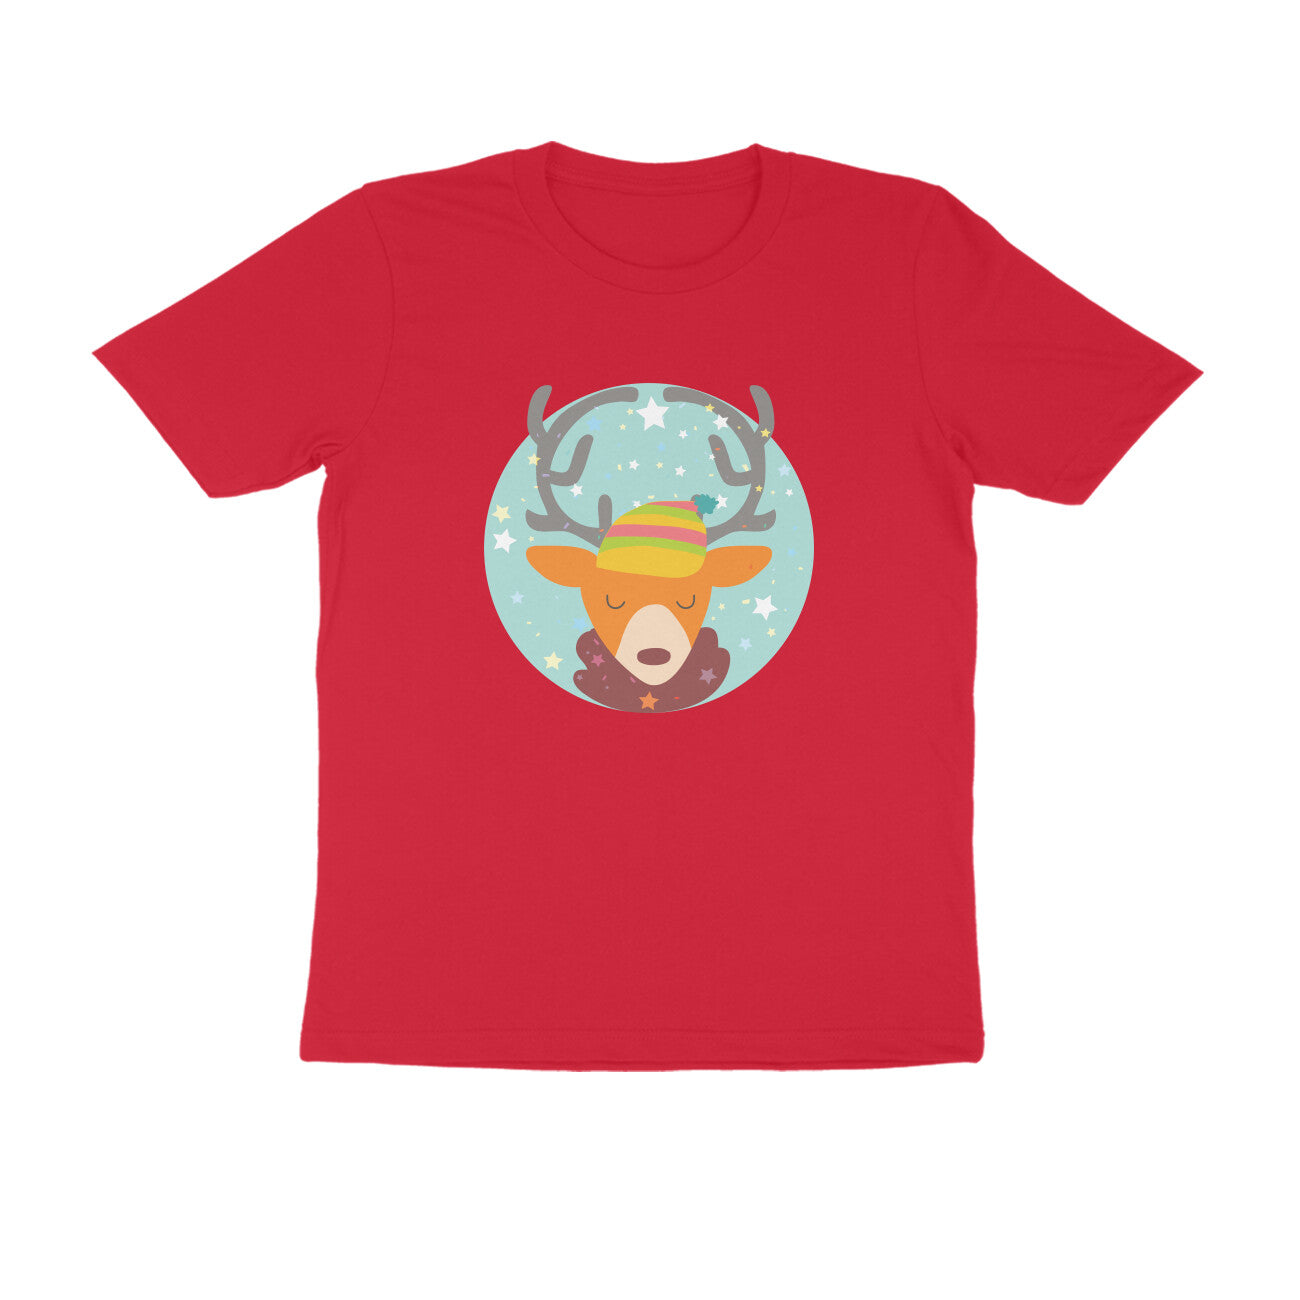 Christmas Reindeer -Tshirt for Men